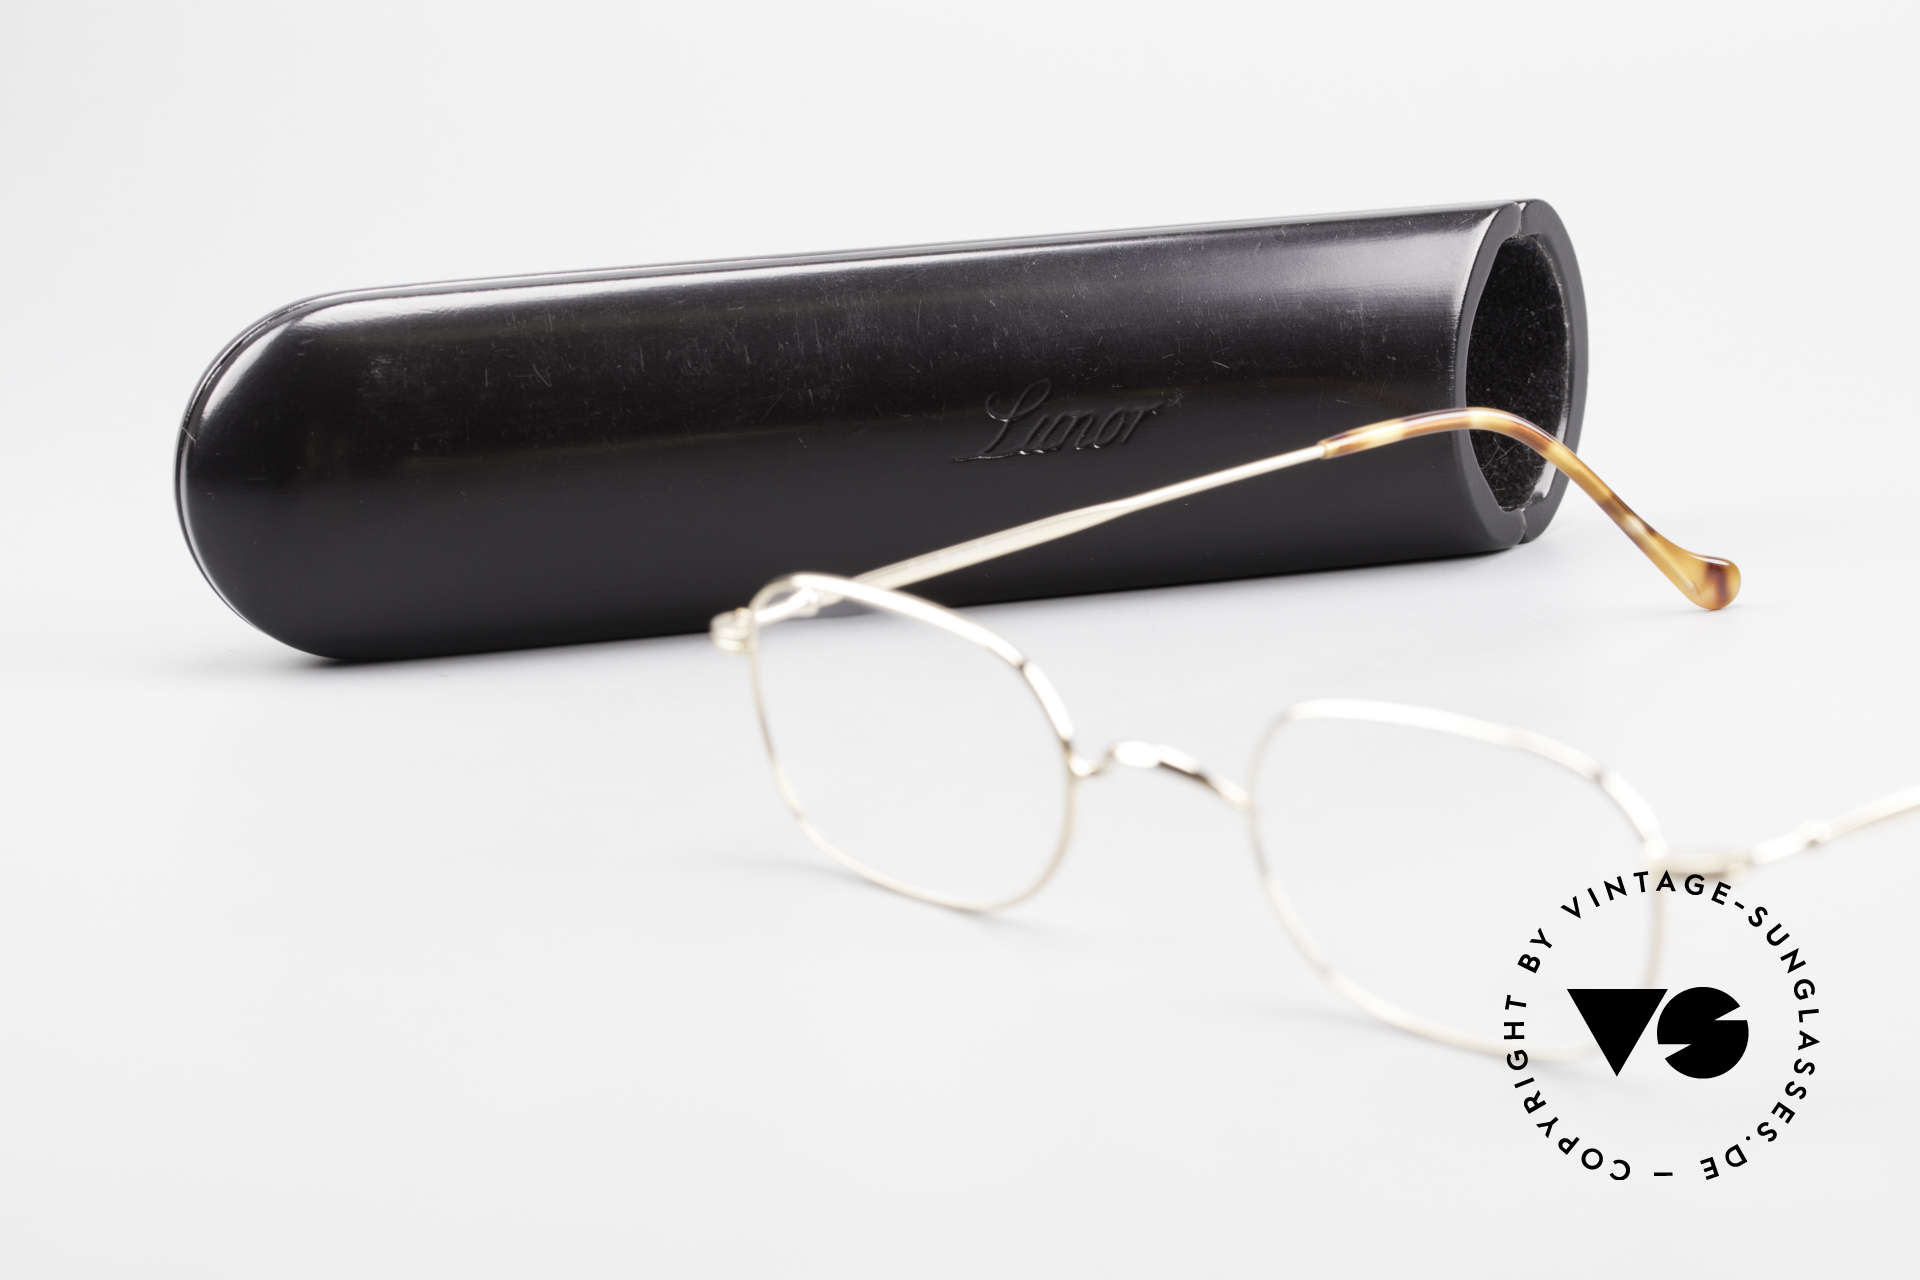 Lunor 322 Classic Vintage Eyeglasses 90s, Size: small, Made for Men and Women